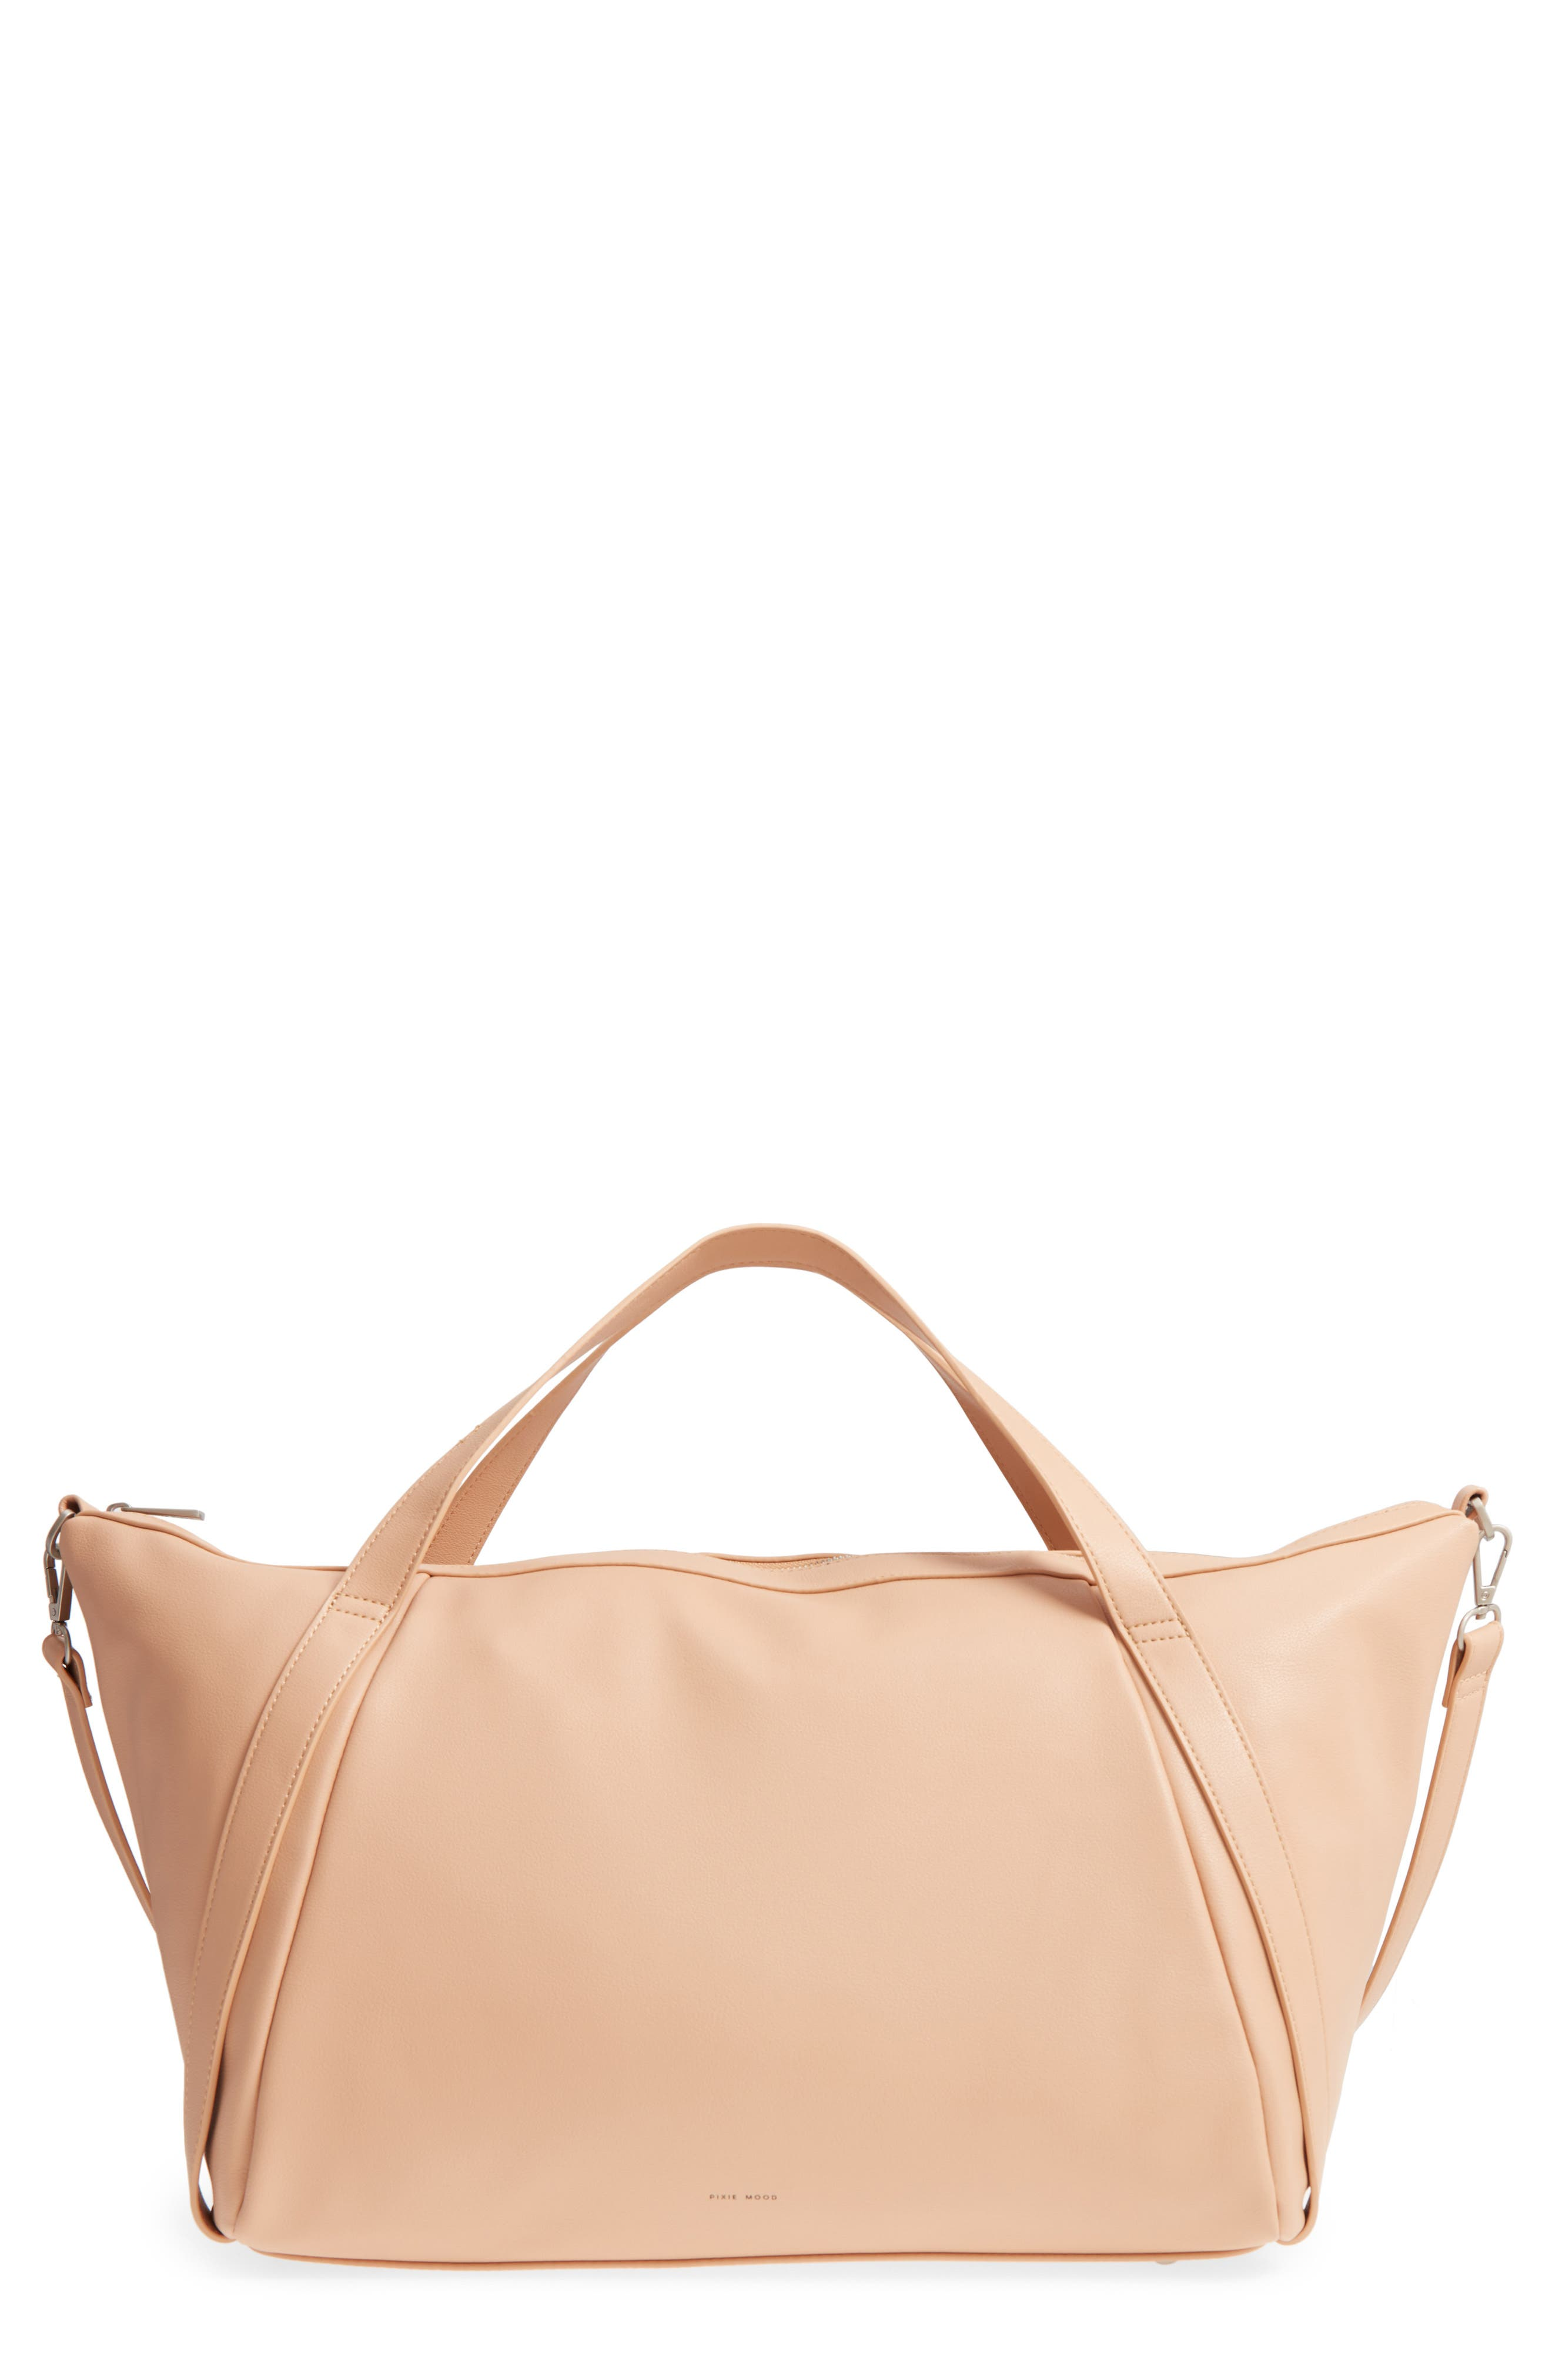 Mia Faux Leather Tote,                             Main thumbnail 1, color,                             Praline